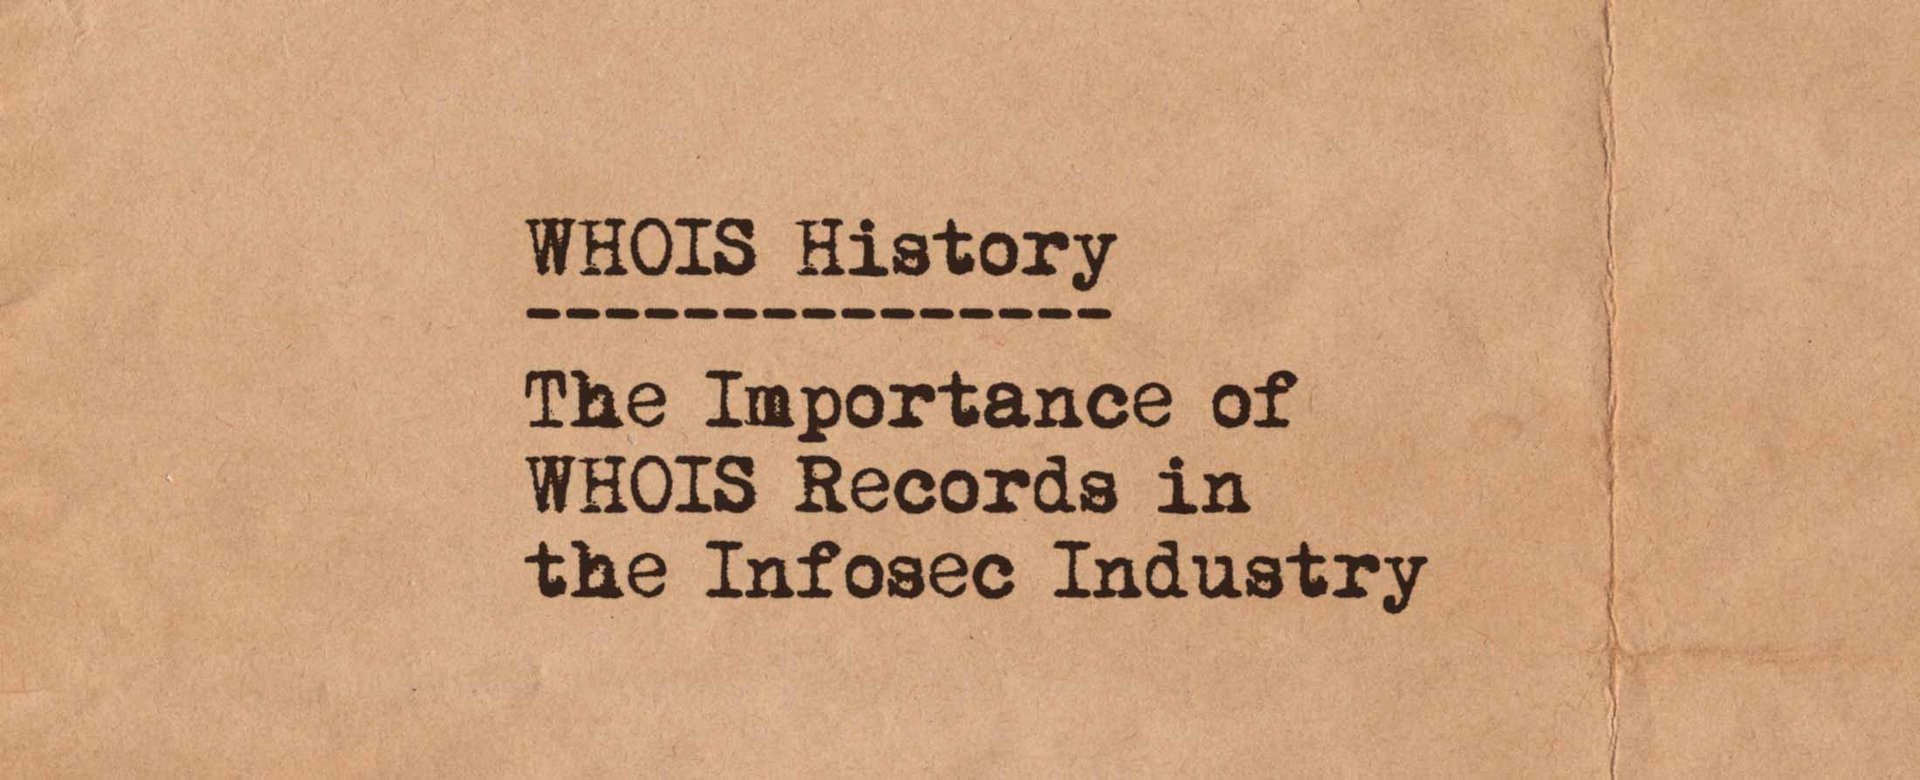 WHOIS History: The Importance of WHOIS Records in the Infosec Industry